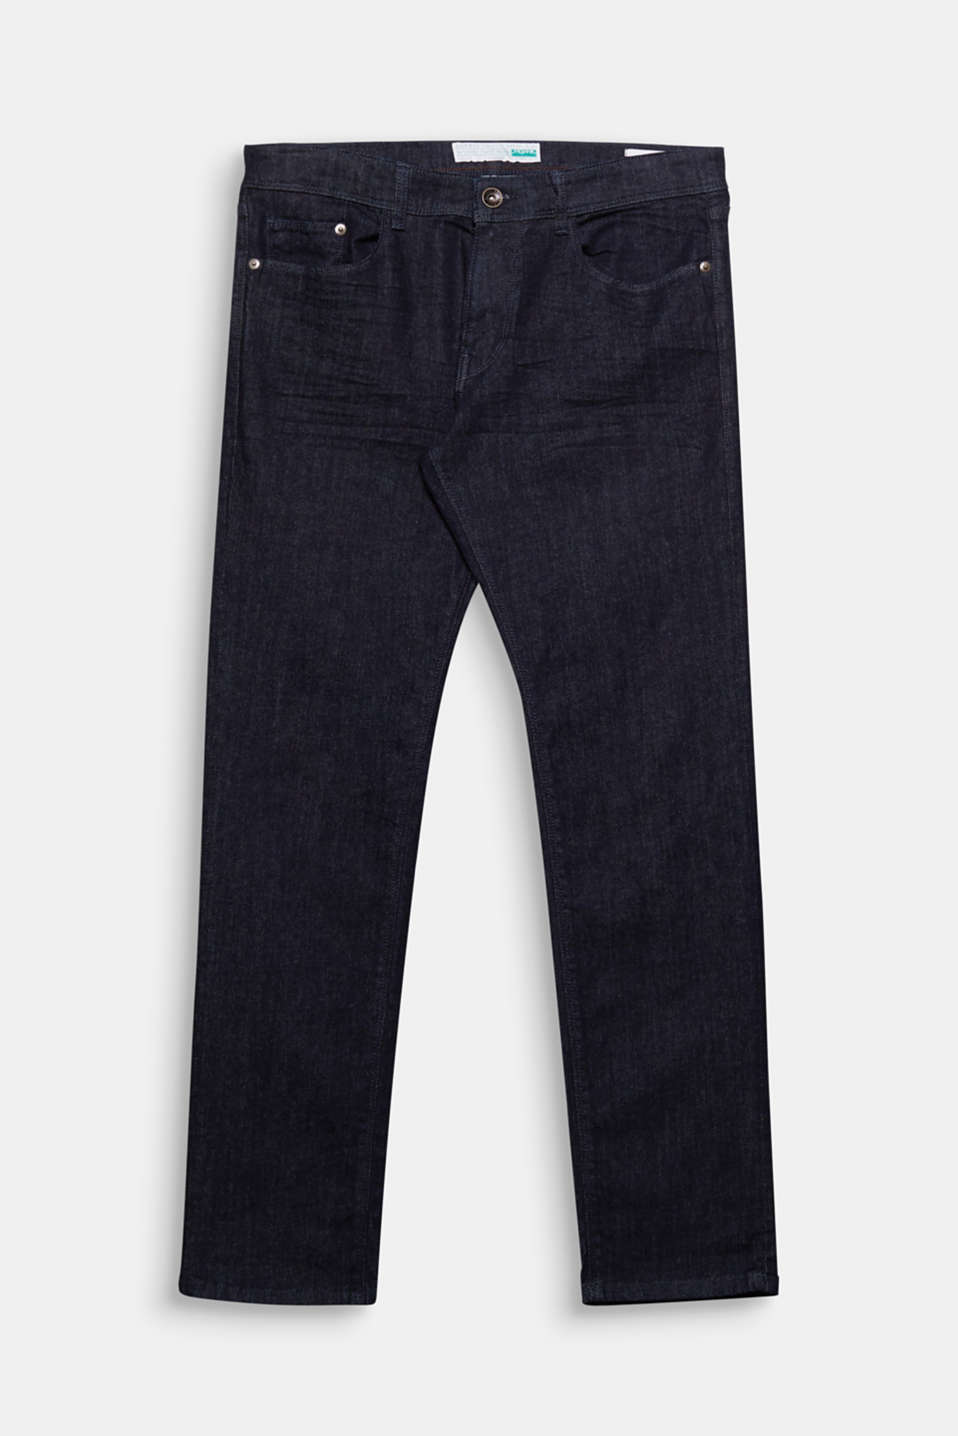 5 pockets jeans made of comfy and stretchy, organic cotton in a classic rinse wash